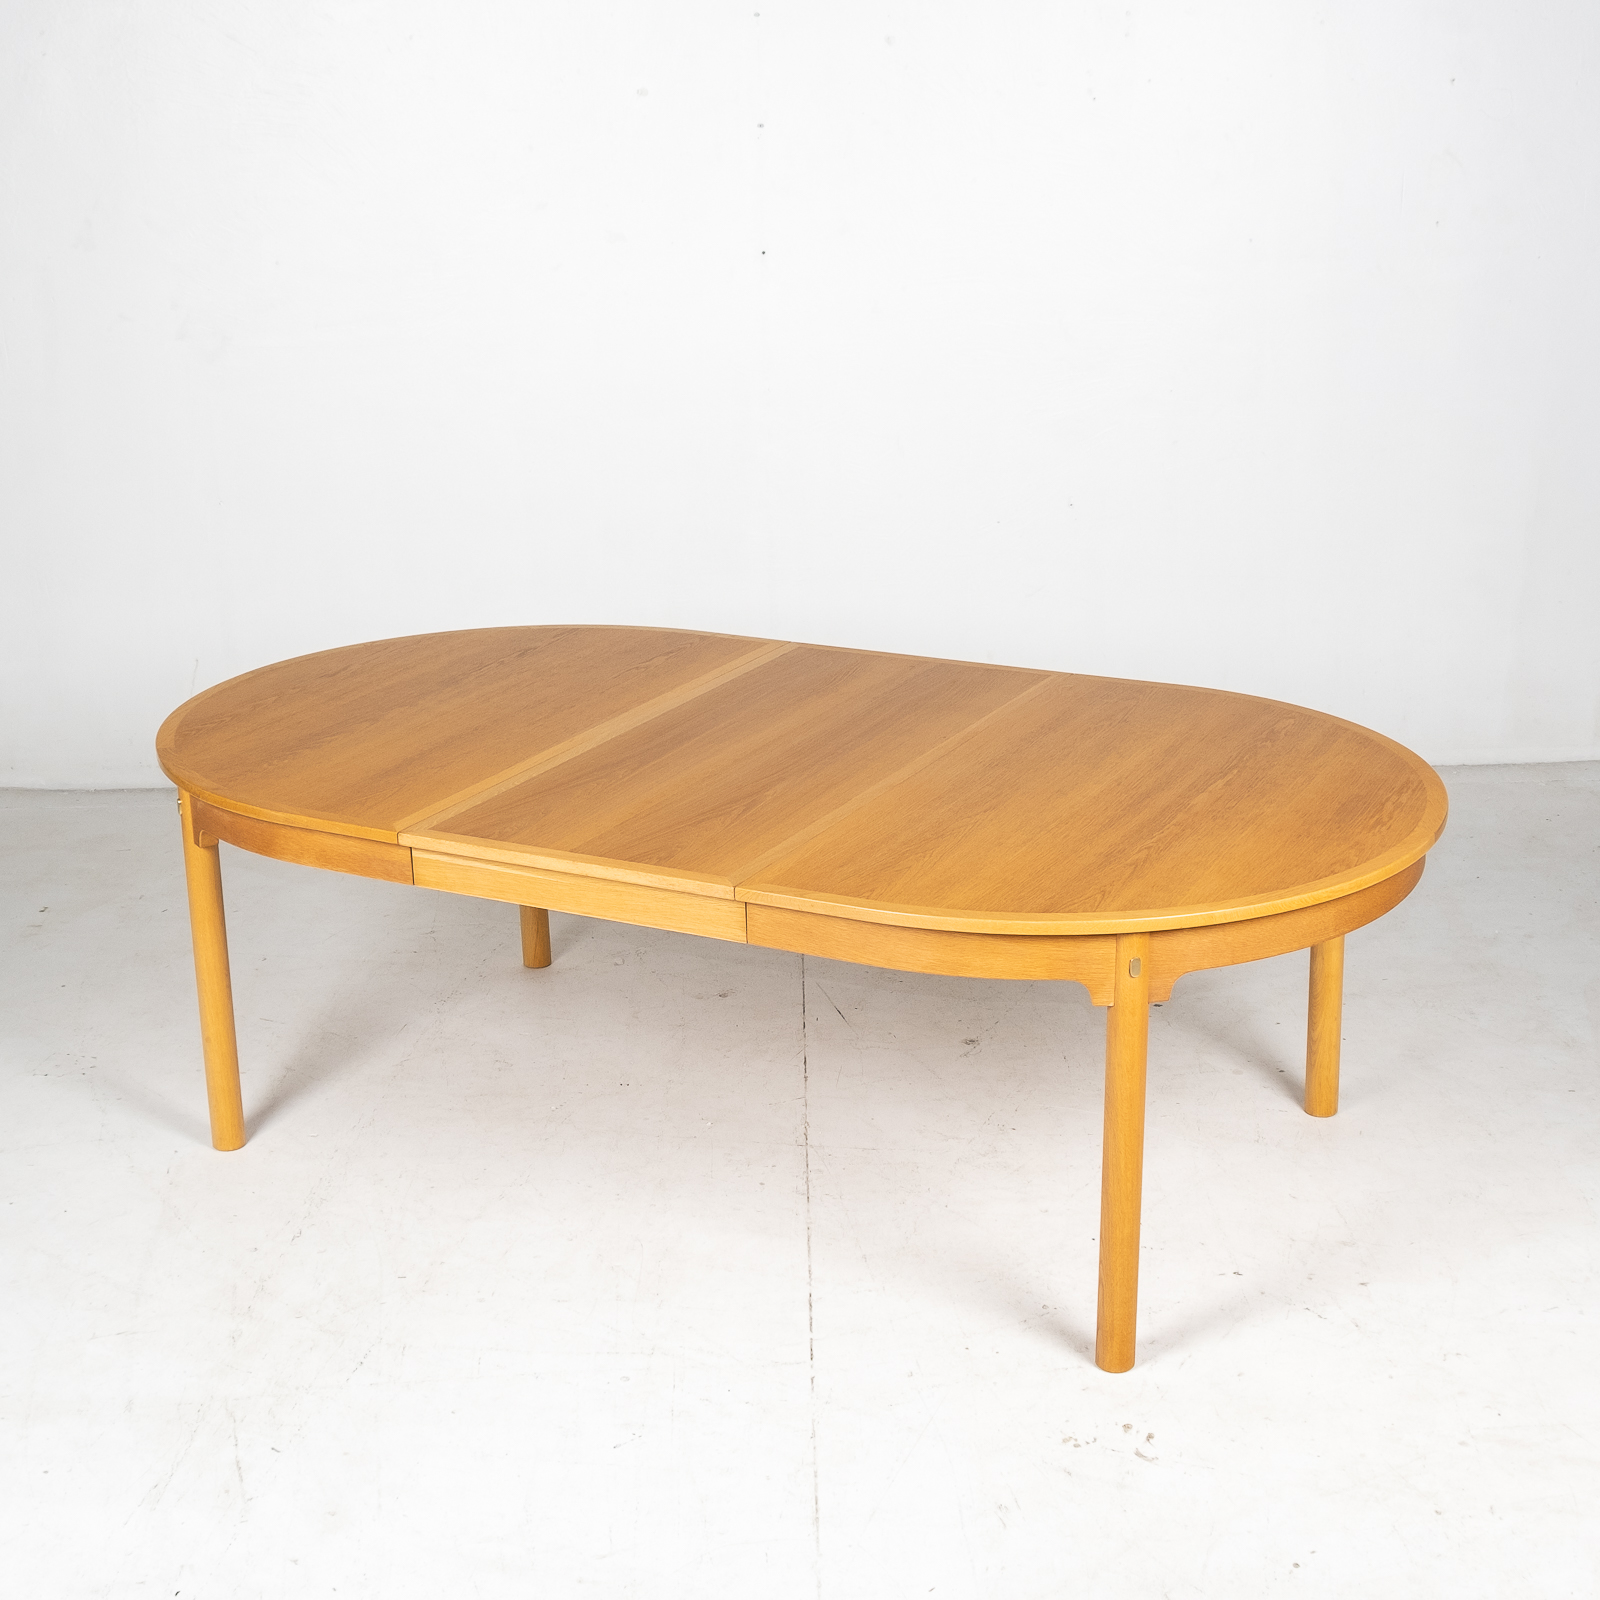 Oresund Round Dining Table By Borge Mogensen For Karl Andersson & Soner In Oak With One Extension Leaf, 1960s, Denmark2